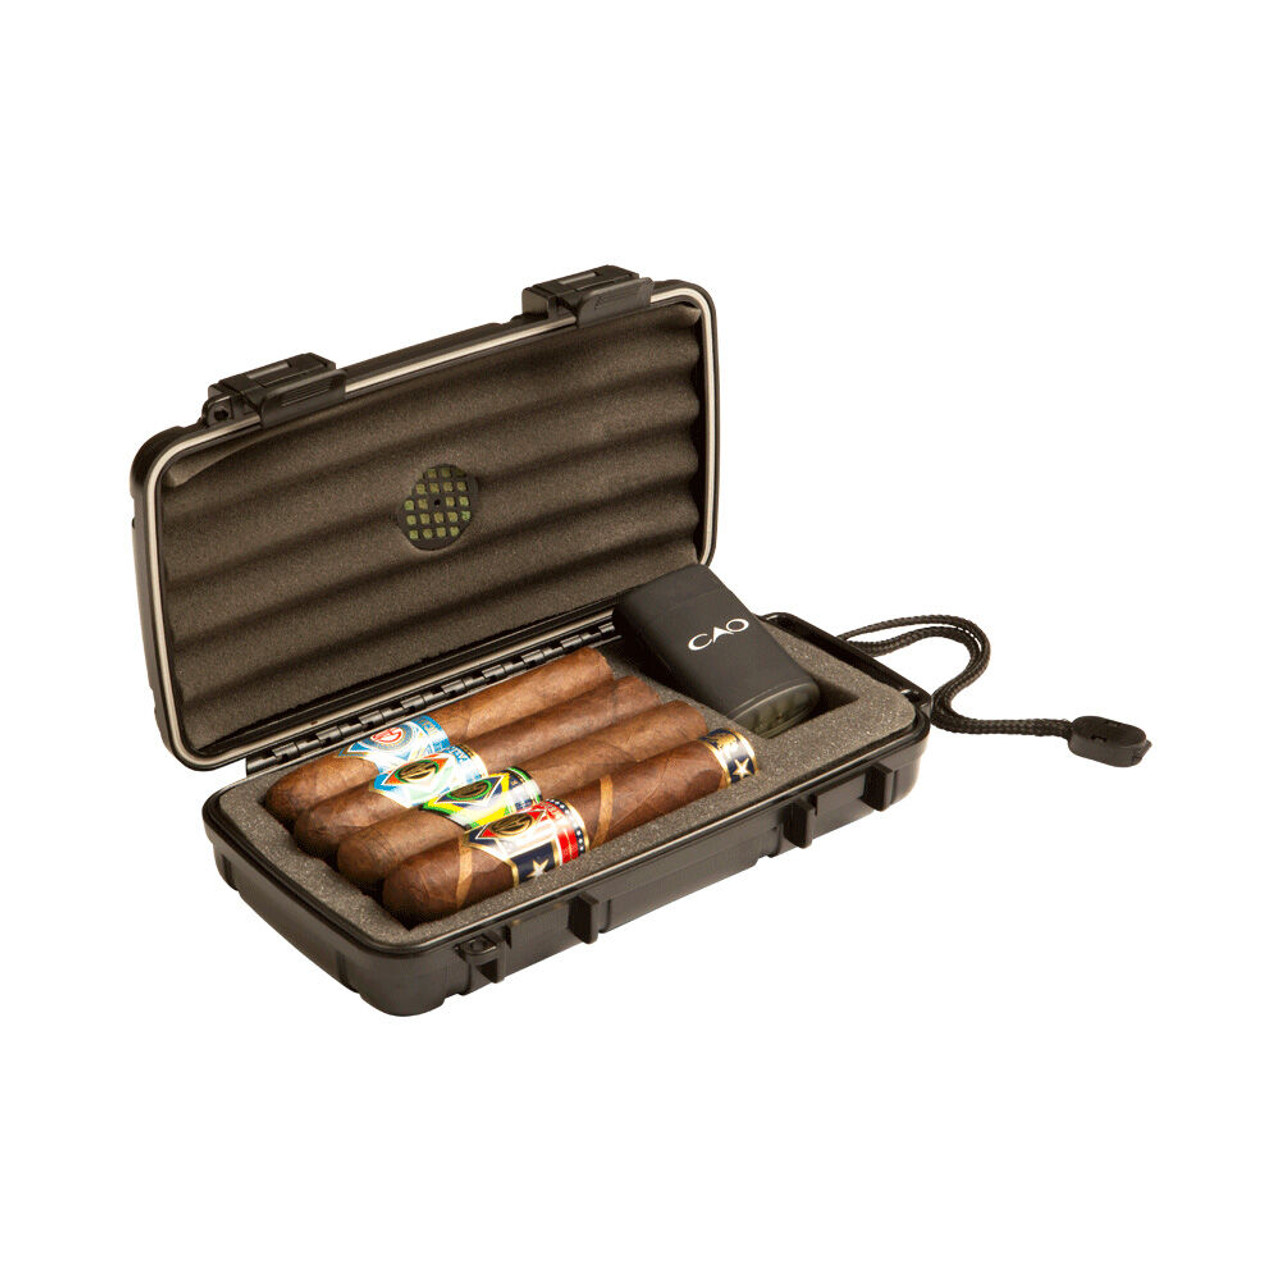 CAO World Travel Humidor Set w/ 4 Cigars